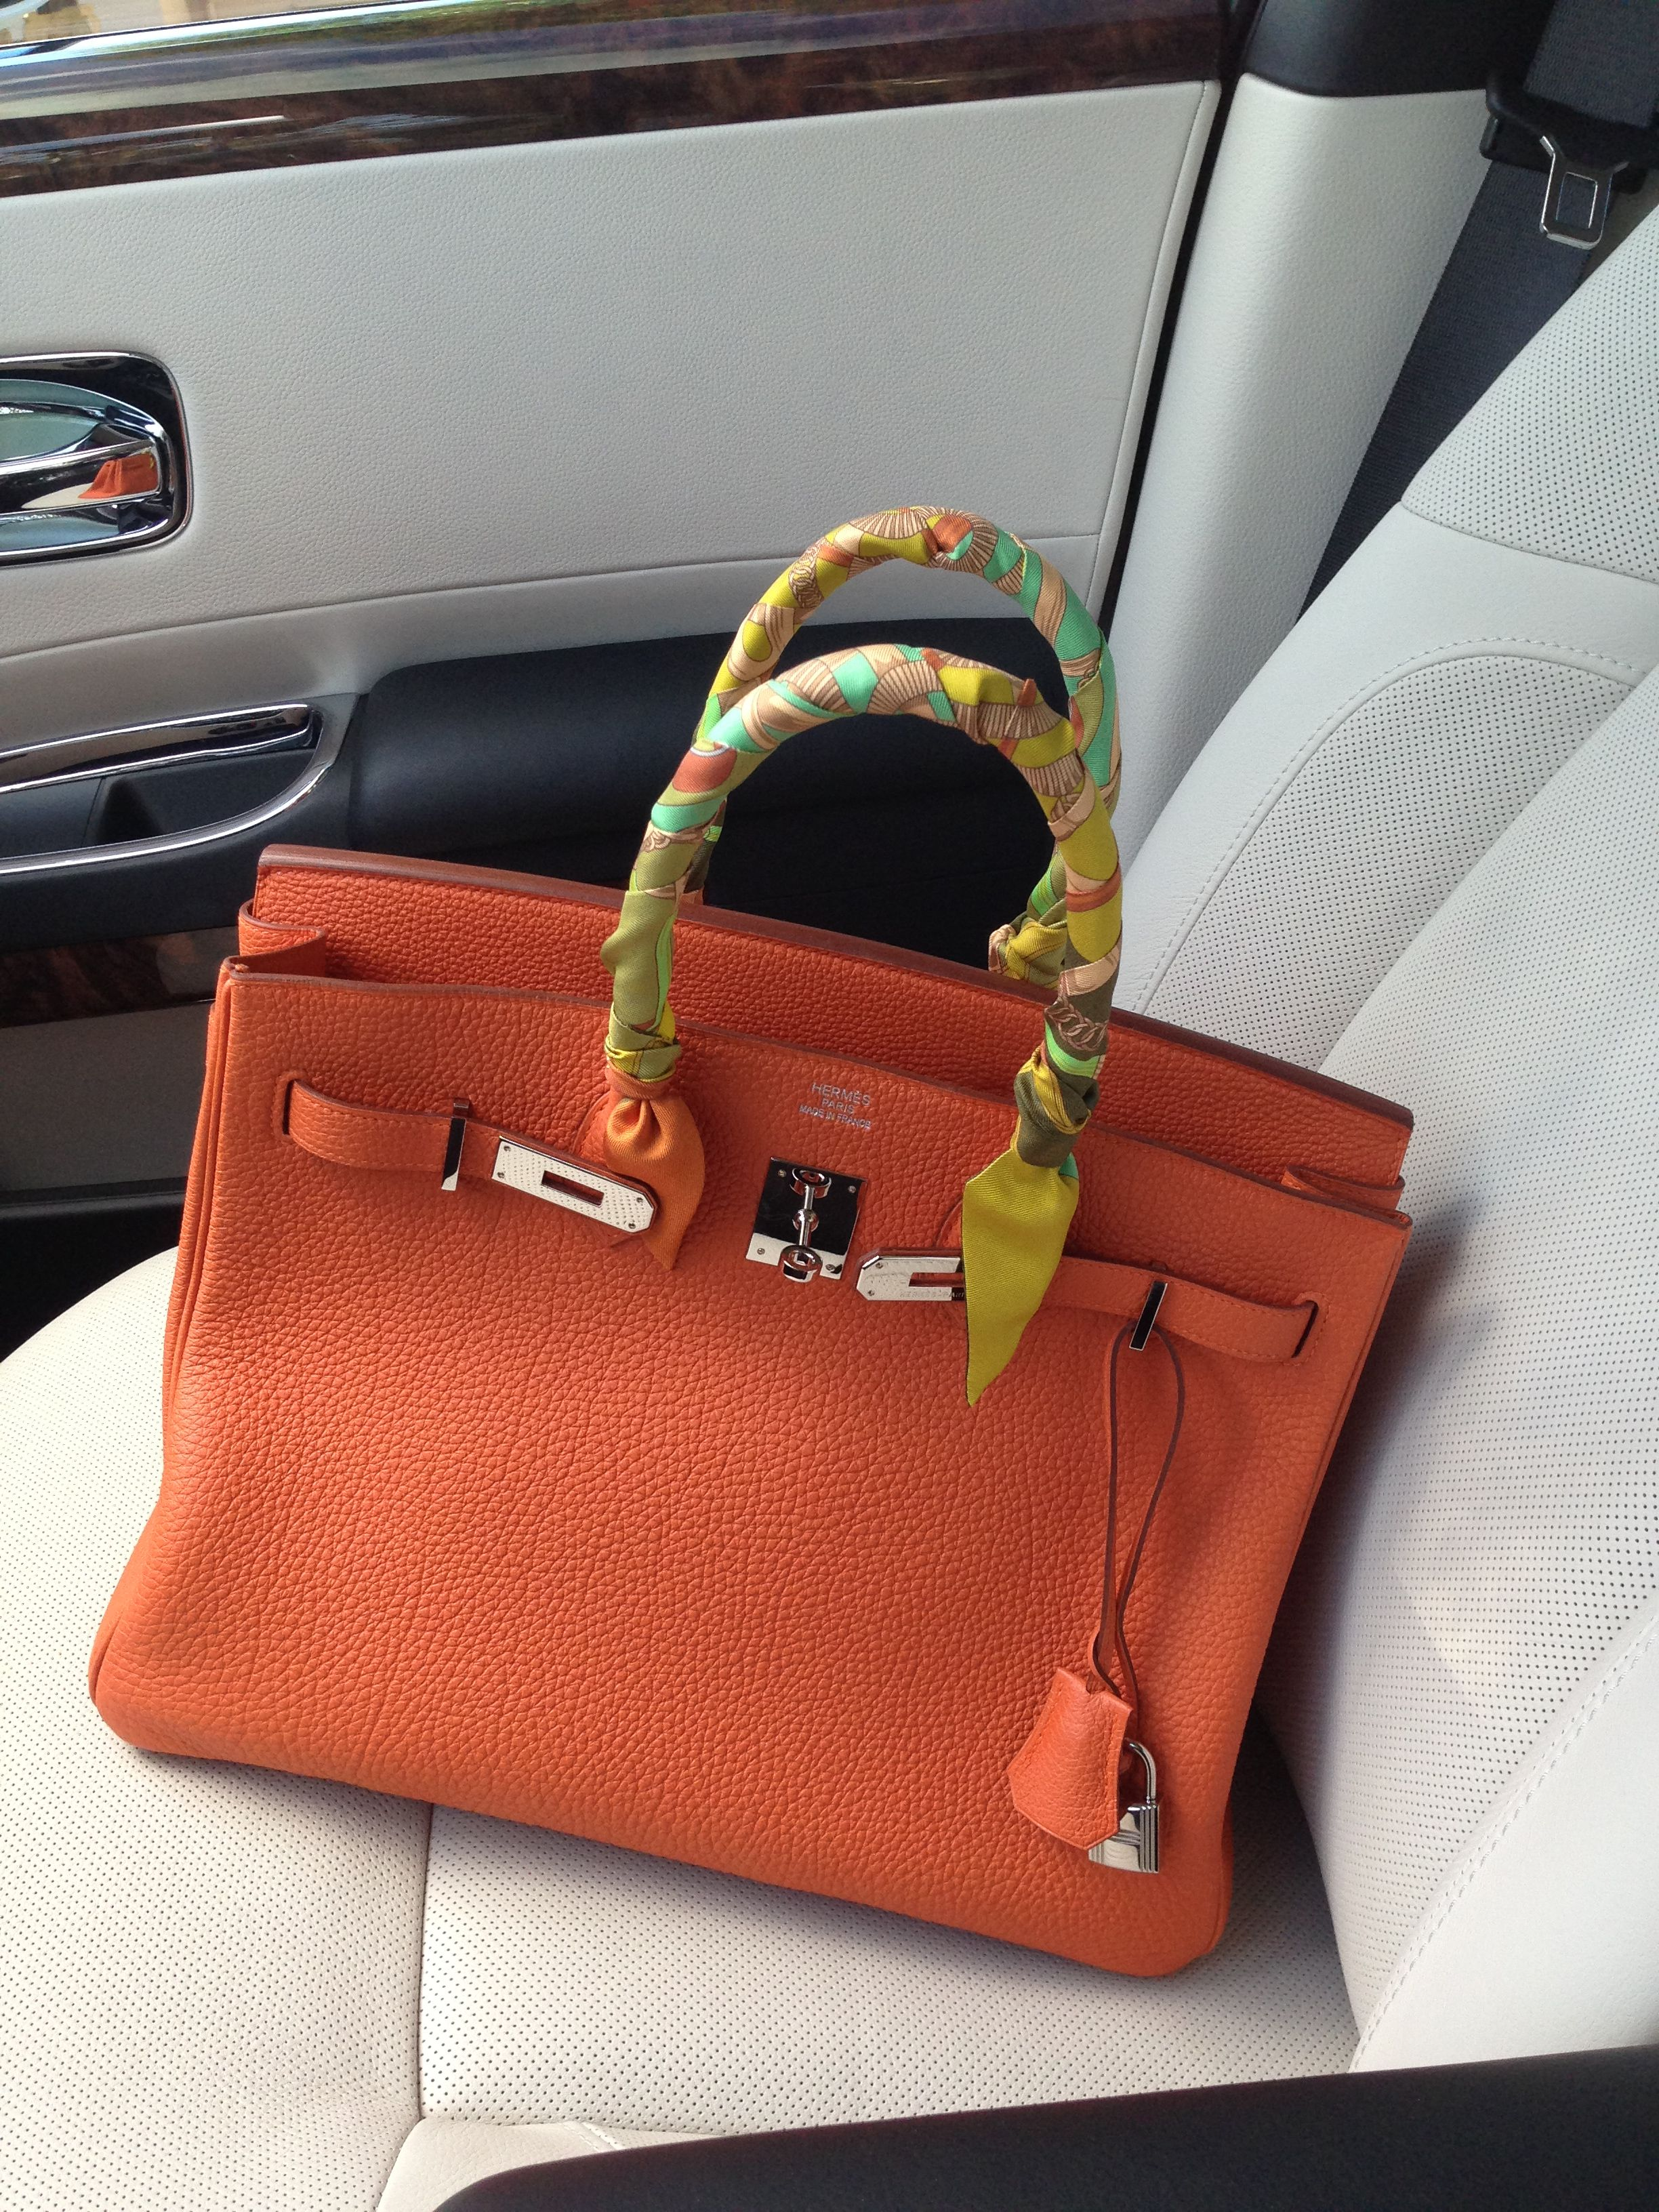 94c2b7ac58 My very first  Birkin 35 in color  Orange.